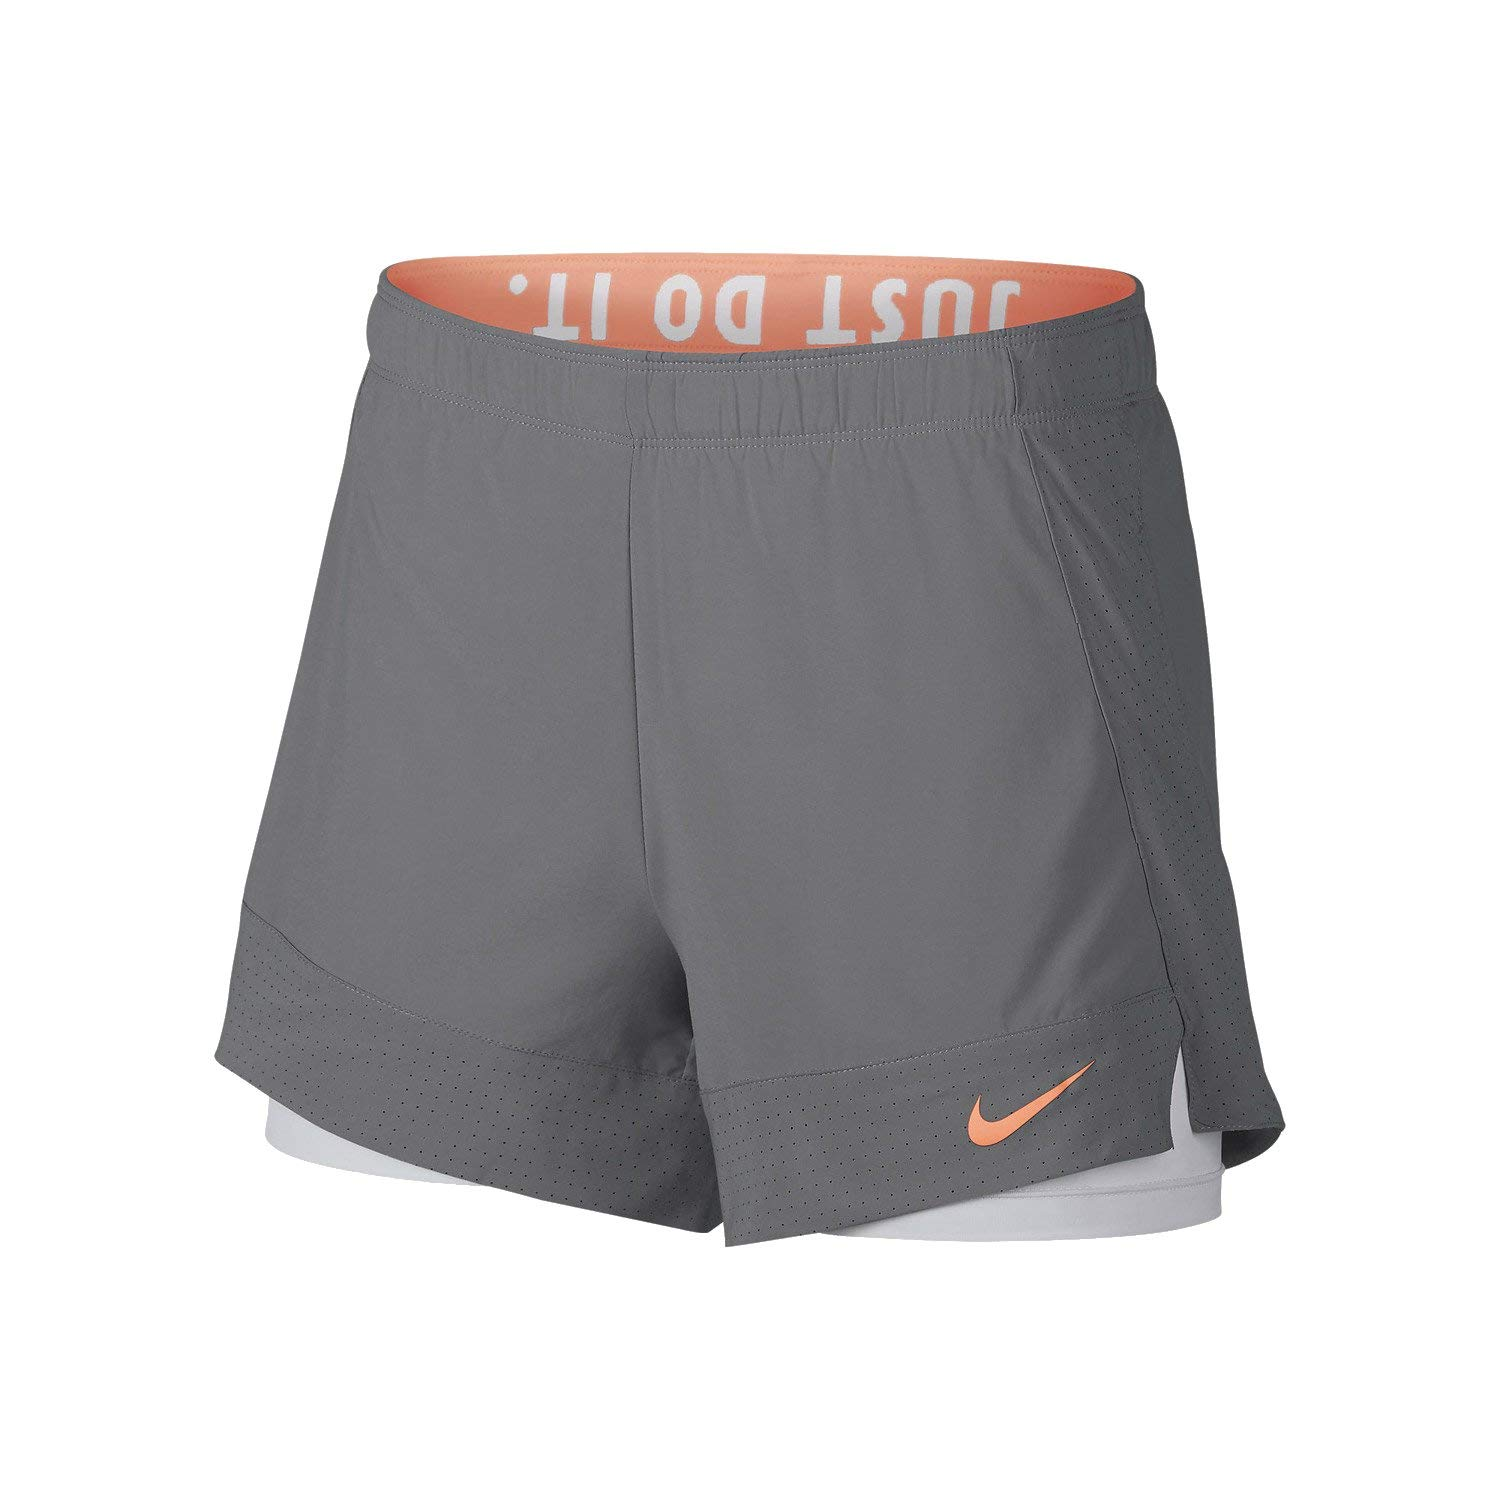 Details about Nike Womens Flex 2-In-1 Training Short Grey White 891939-027 5fa4d9b935a26